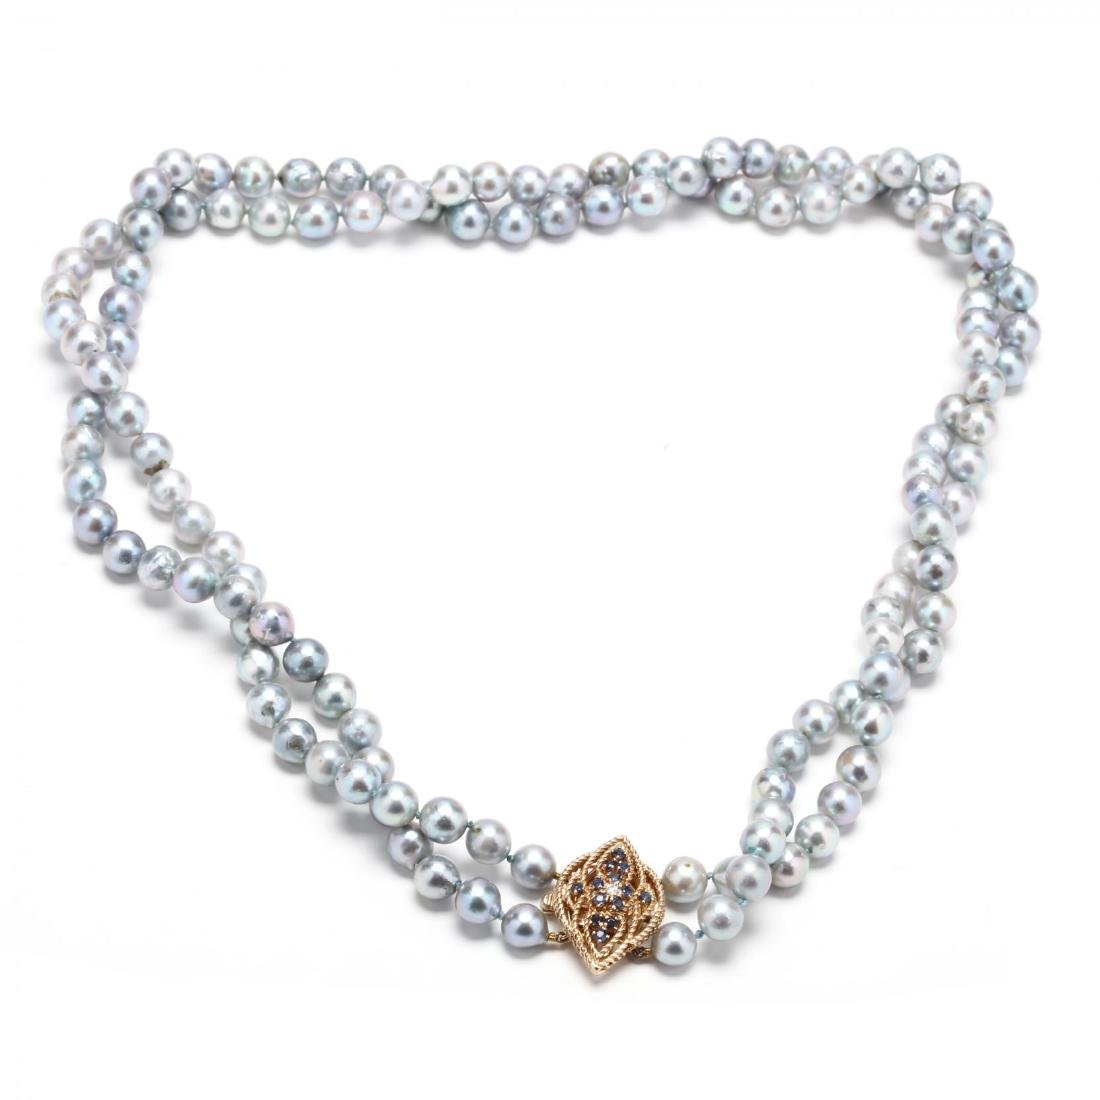 14KT Gold , Pearl, Sapphire, and Diamond Necklace